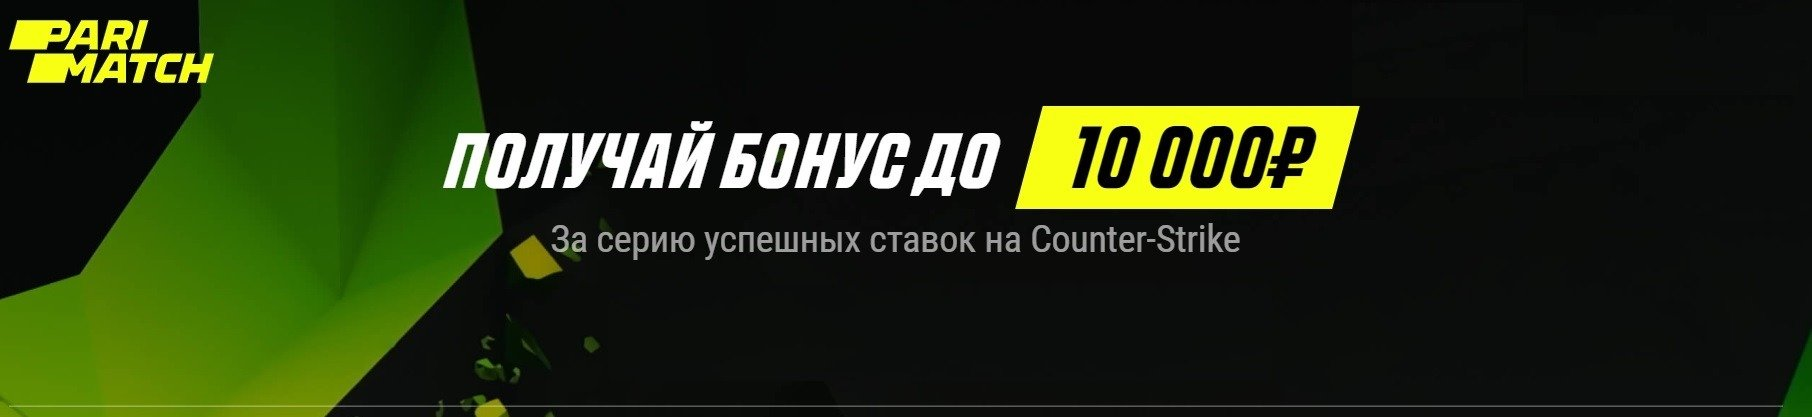 parimatch ru bonus za stavki na counter strike go kibersport